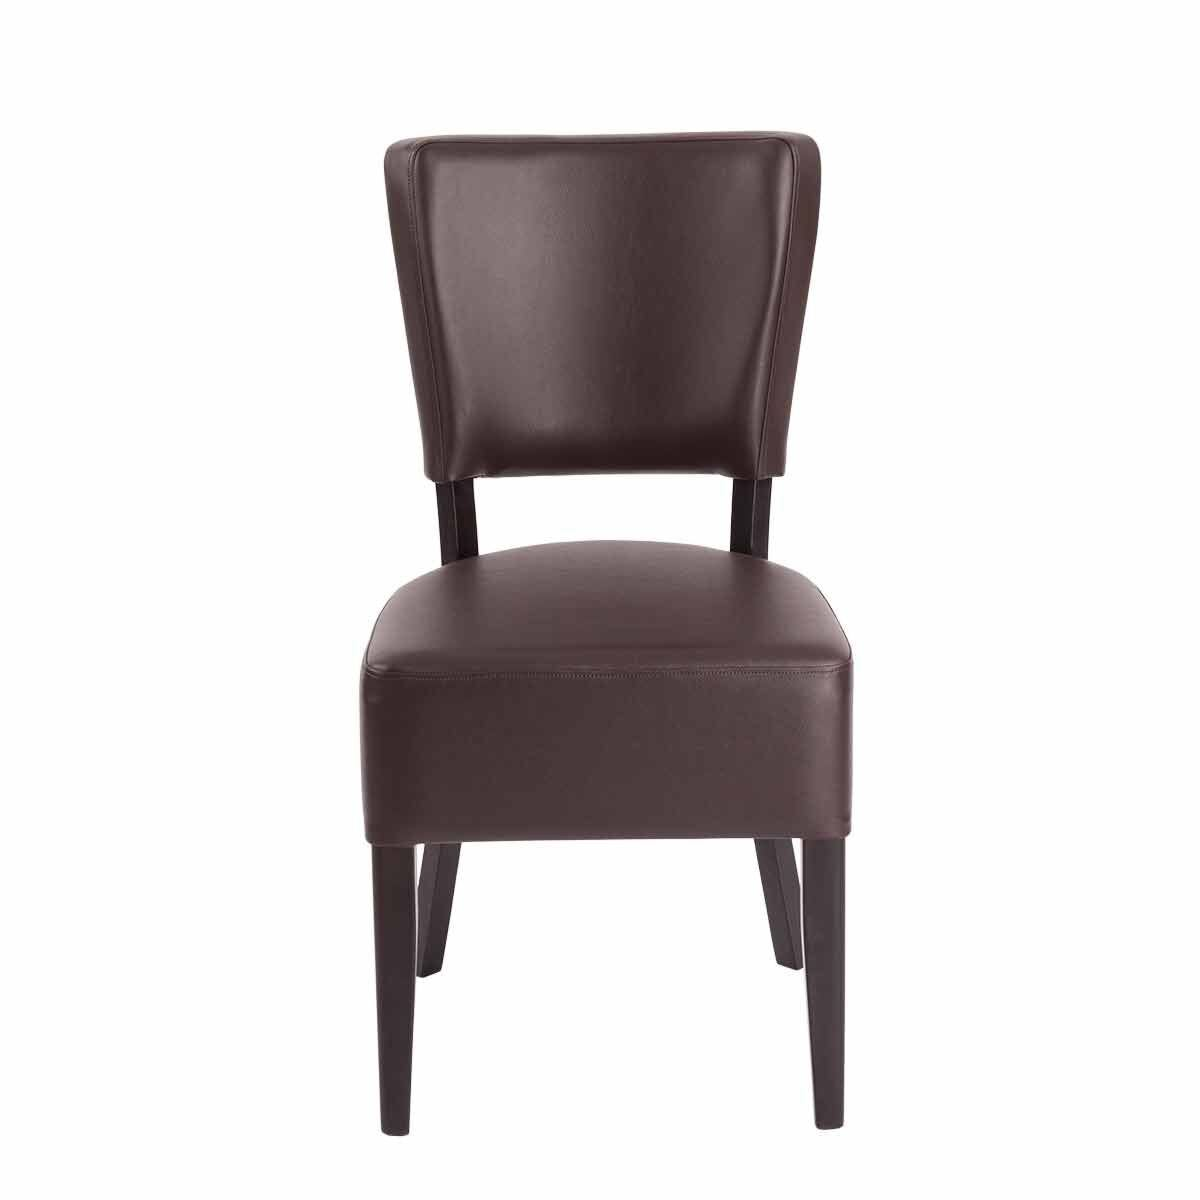 Tabilo Sena Faux Leather Dining Chair